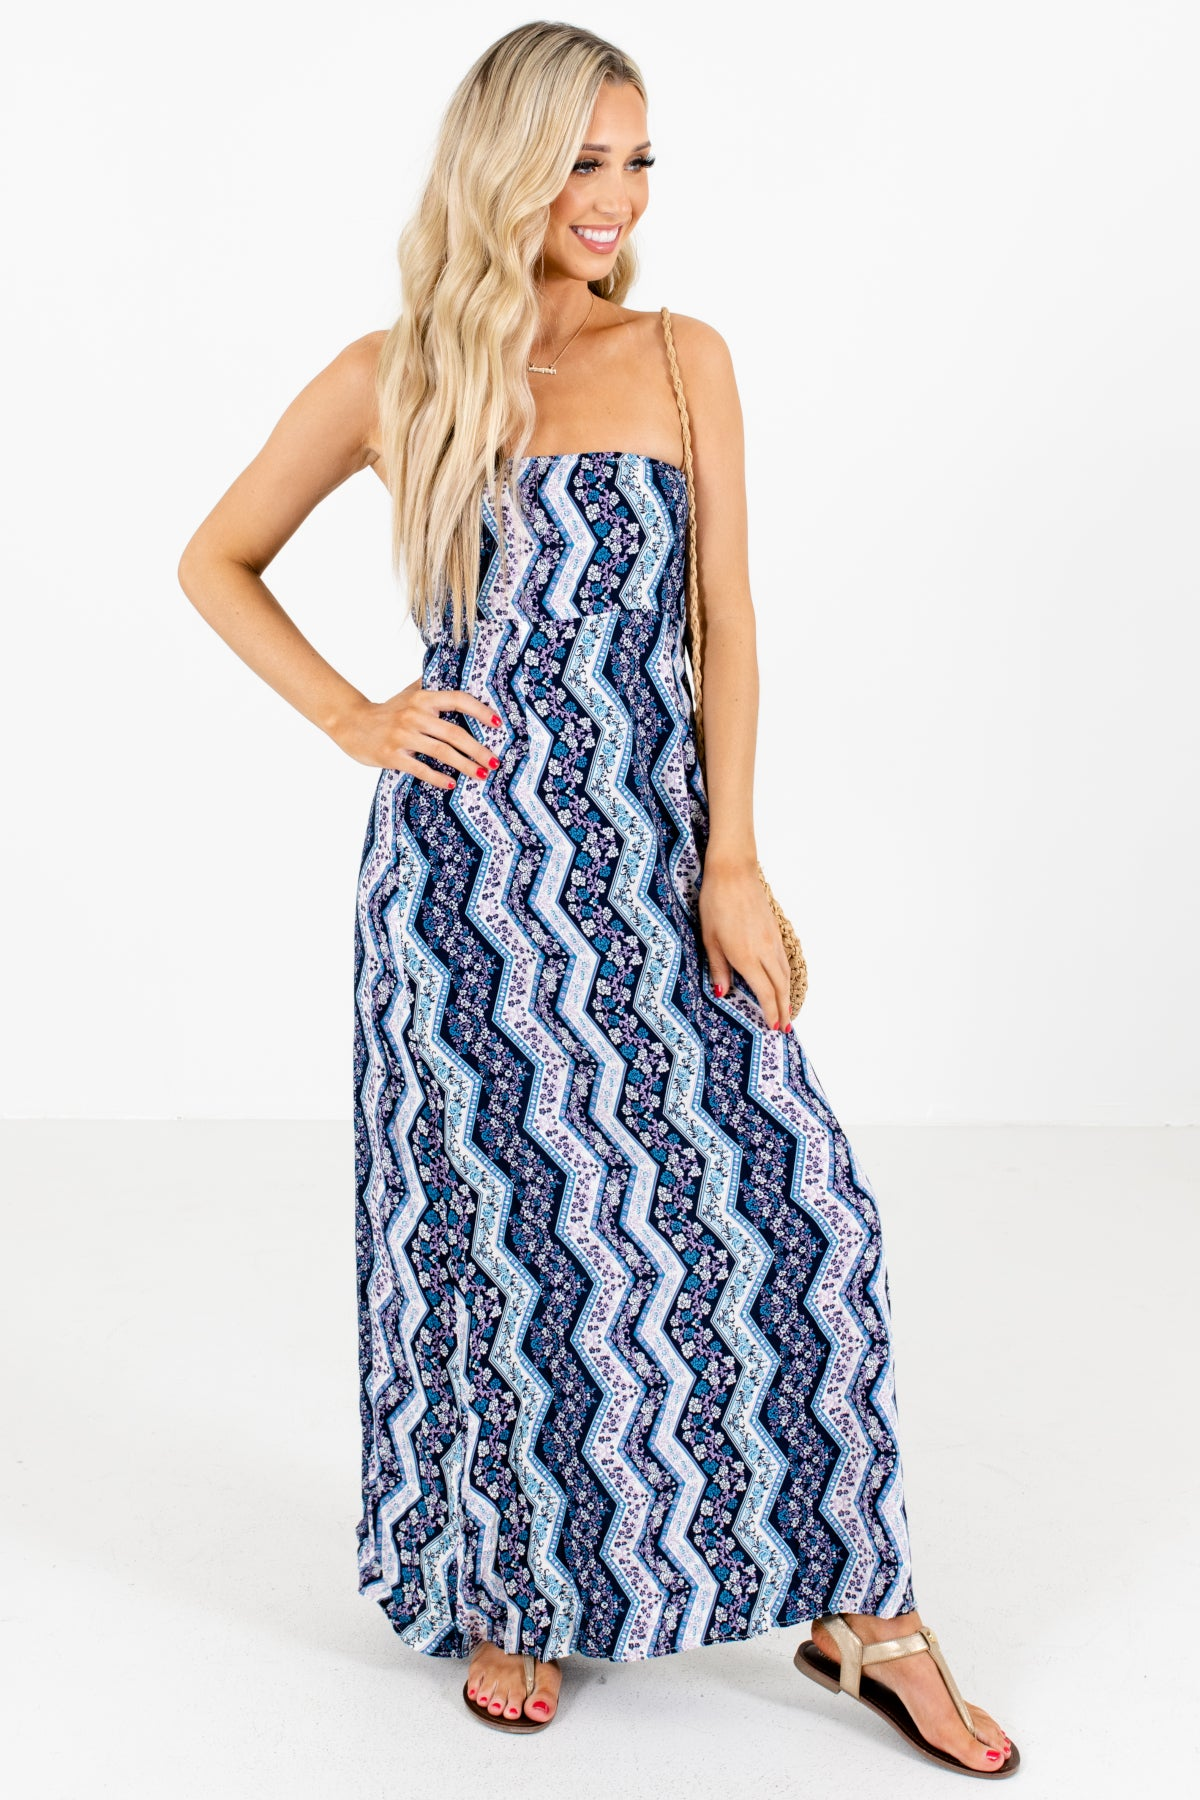 Navy Blue Patterned Boutique Maxi Dresses for Women